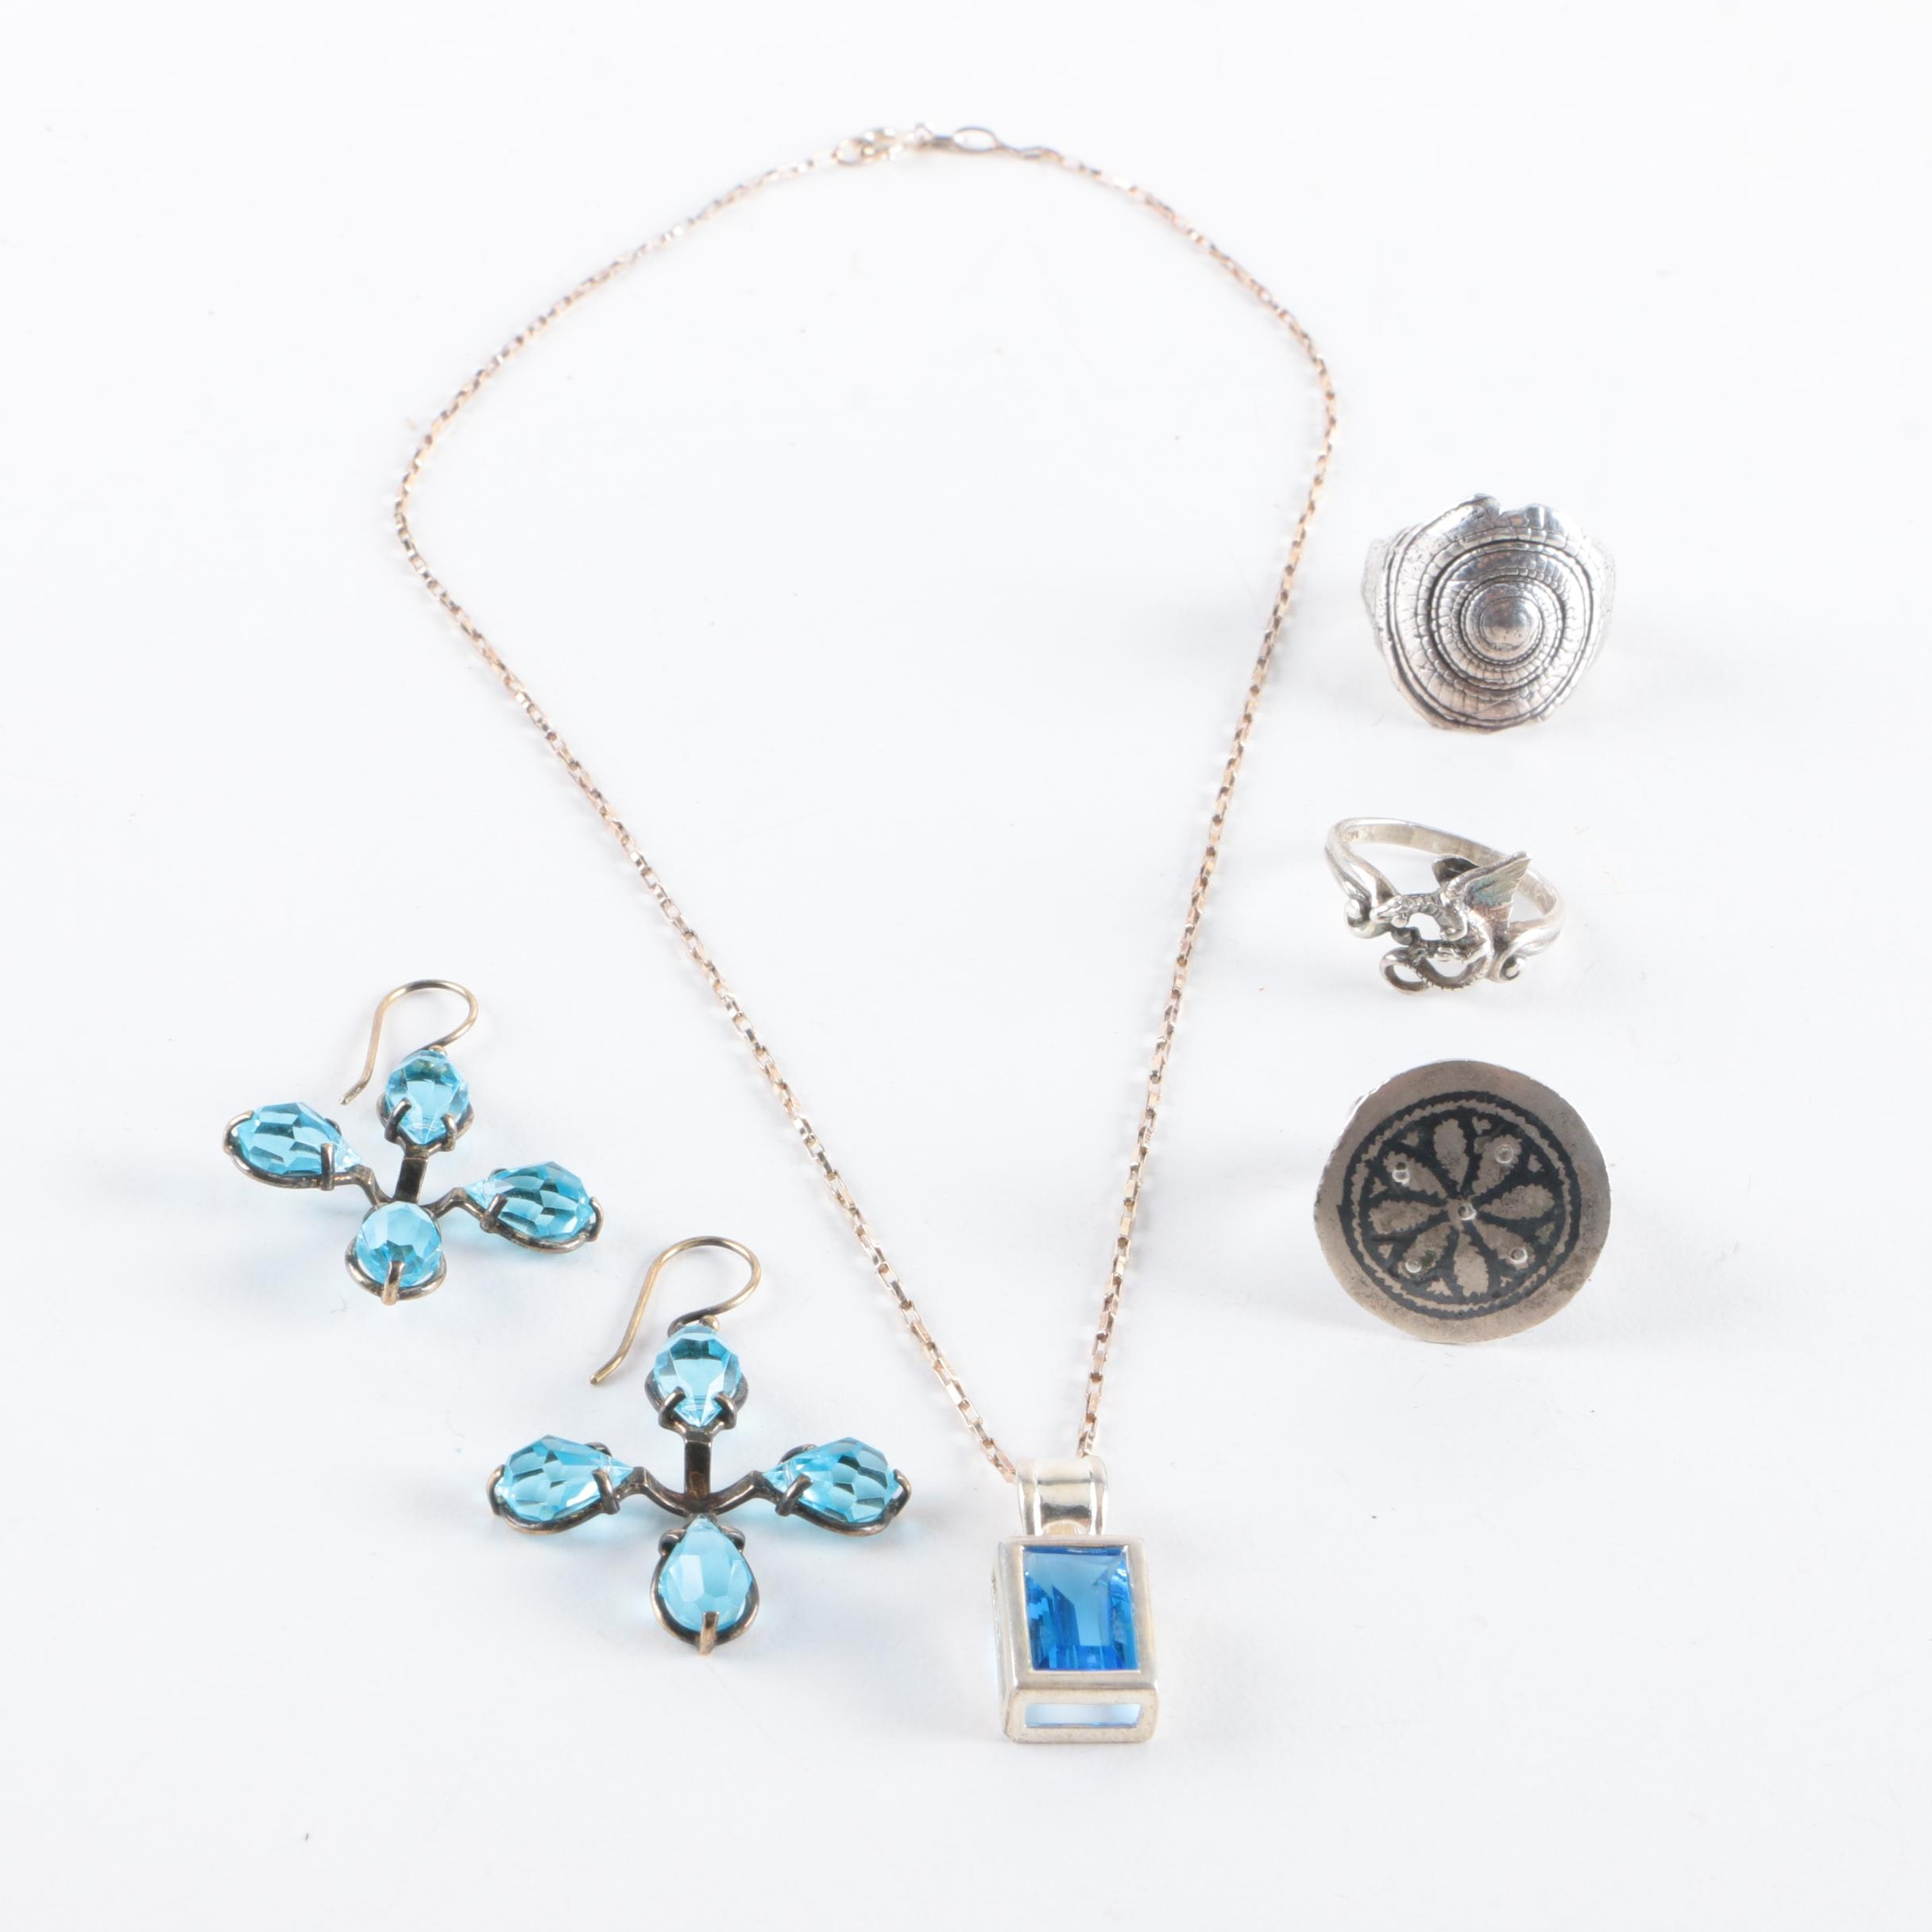 Selection of Silver Glass Jewelry